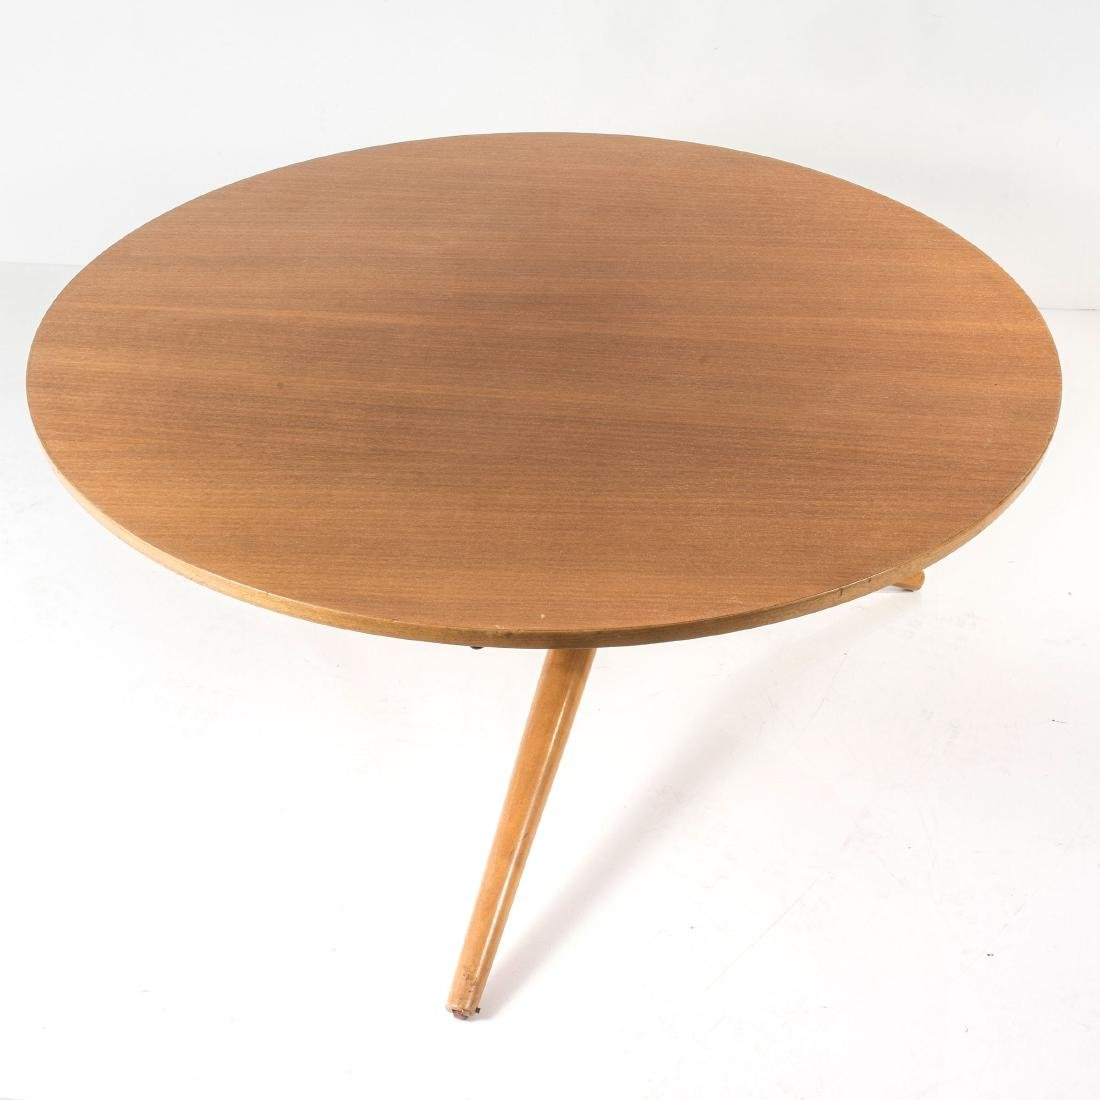 'S.T' coffee table, 1954 - 5